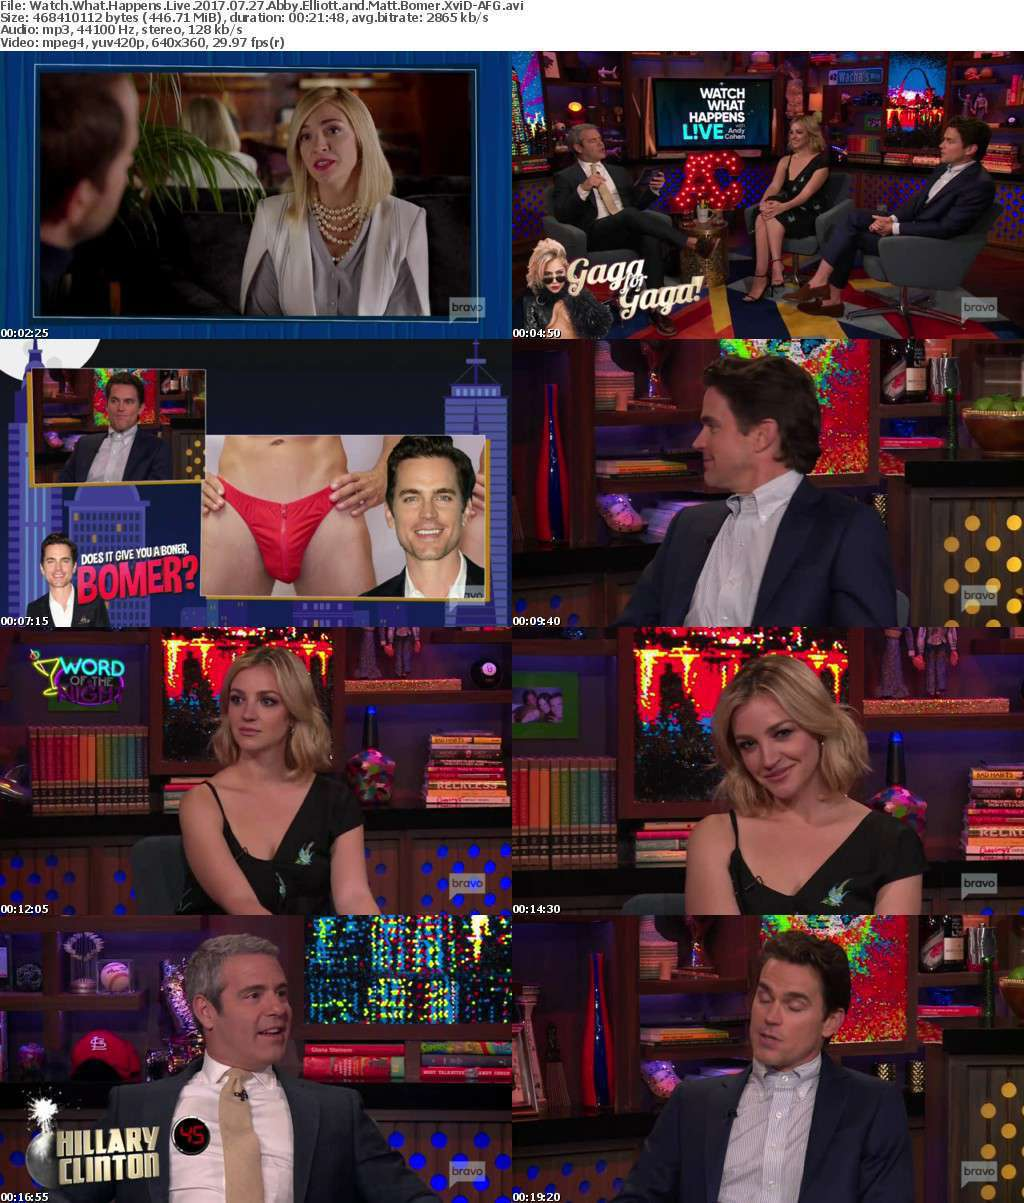 Watch What Happens Live 2017 07 27 Abby Elliott and Matt Bomer XviD-AFG